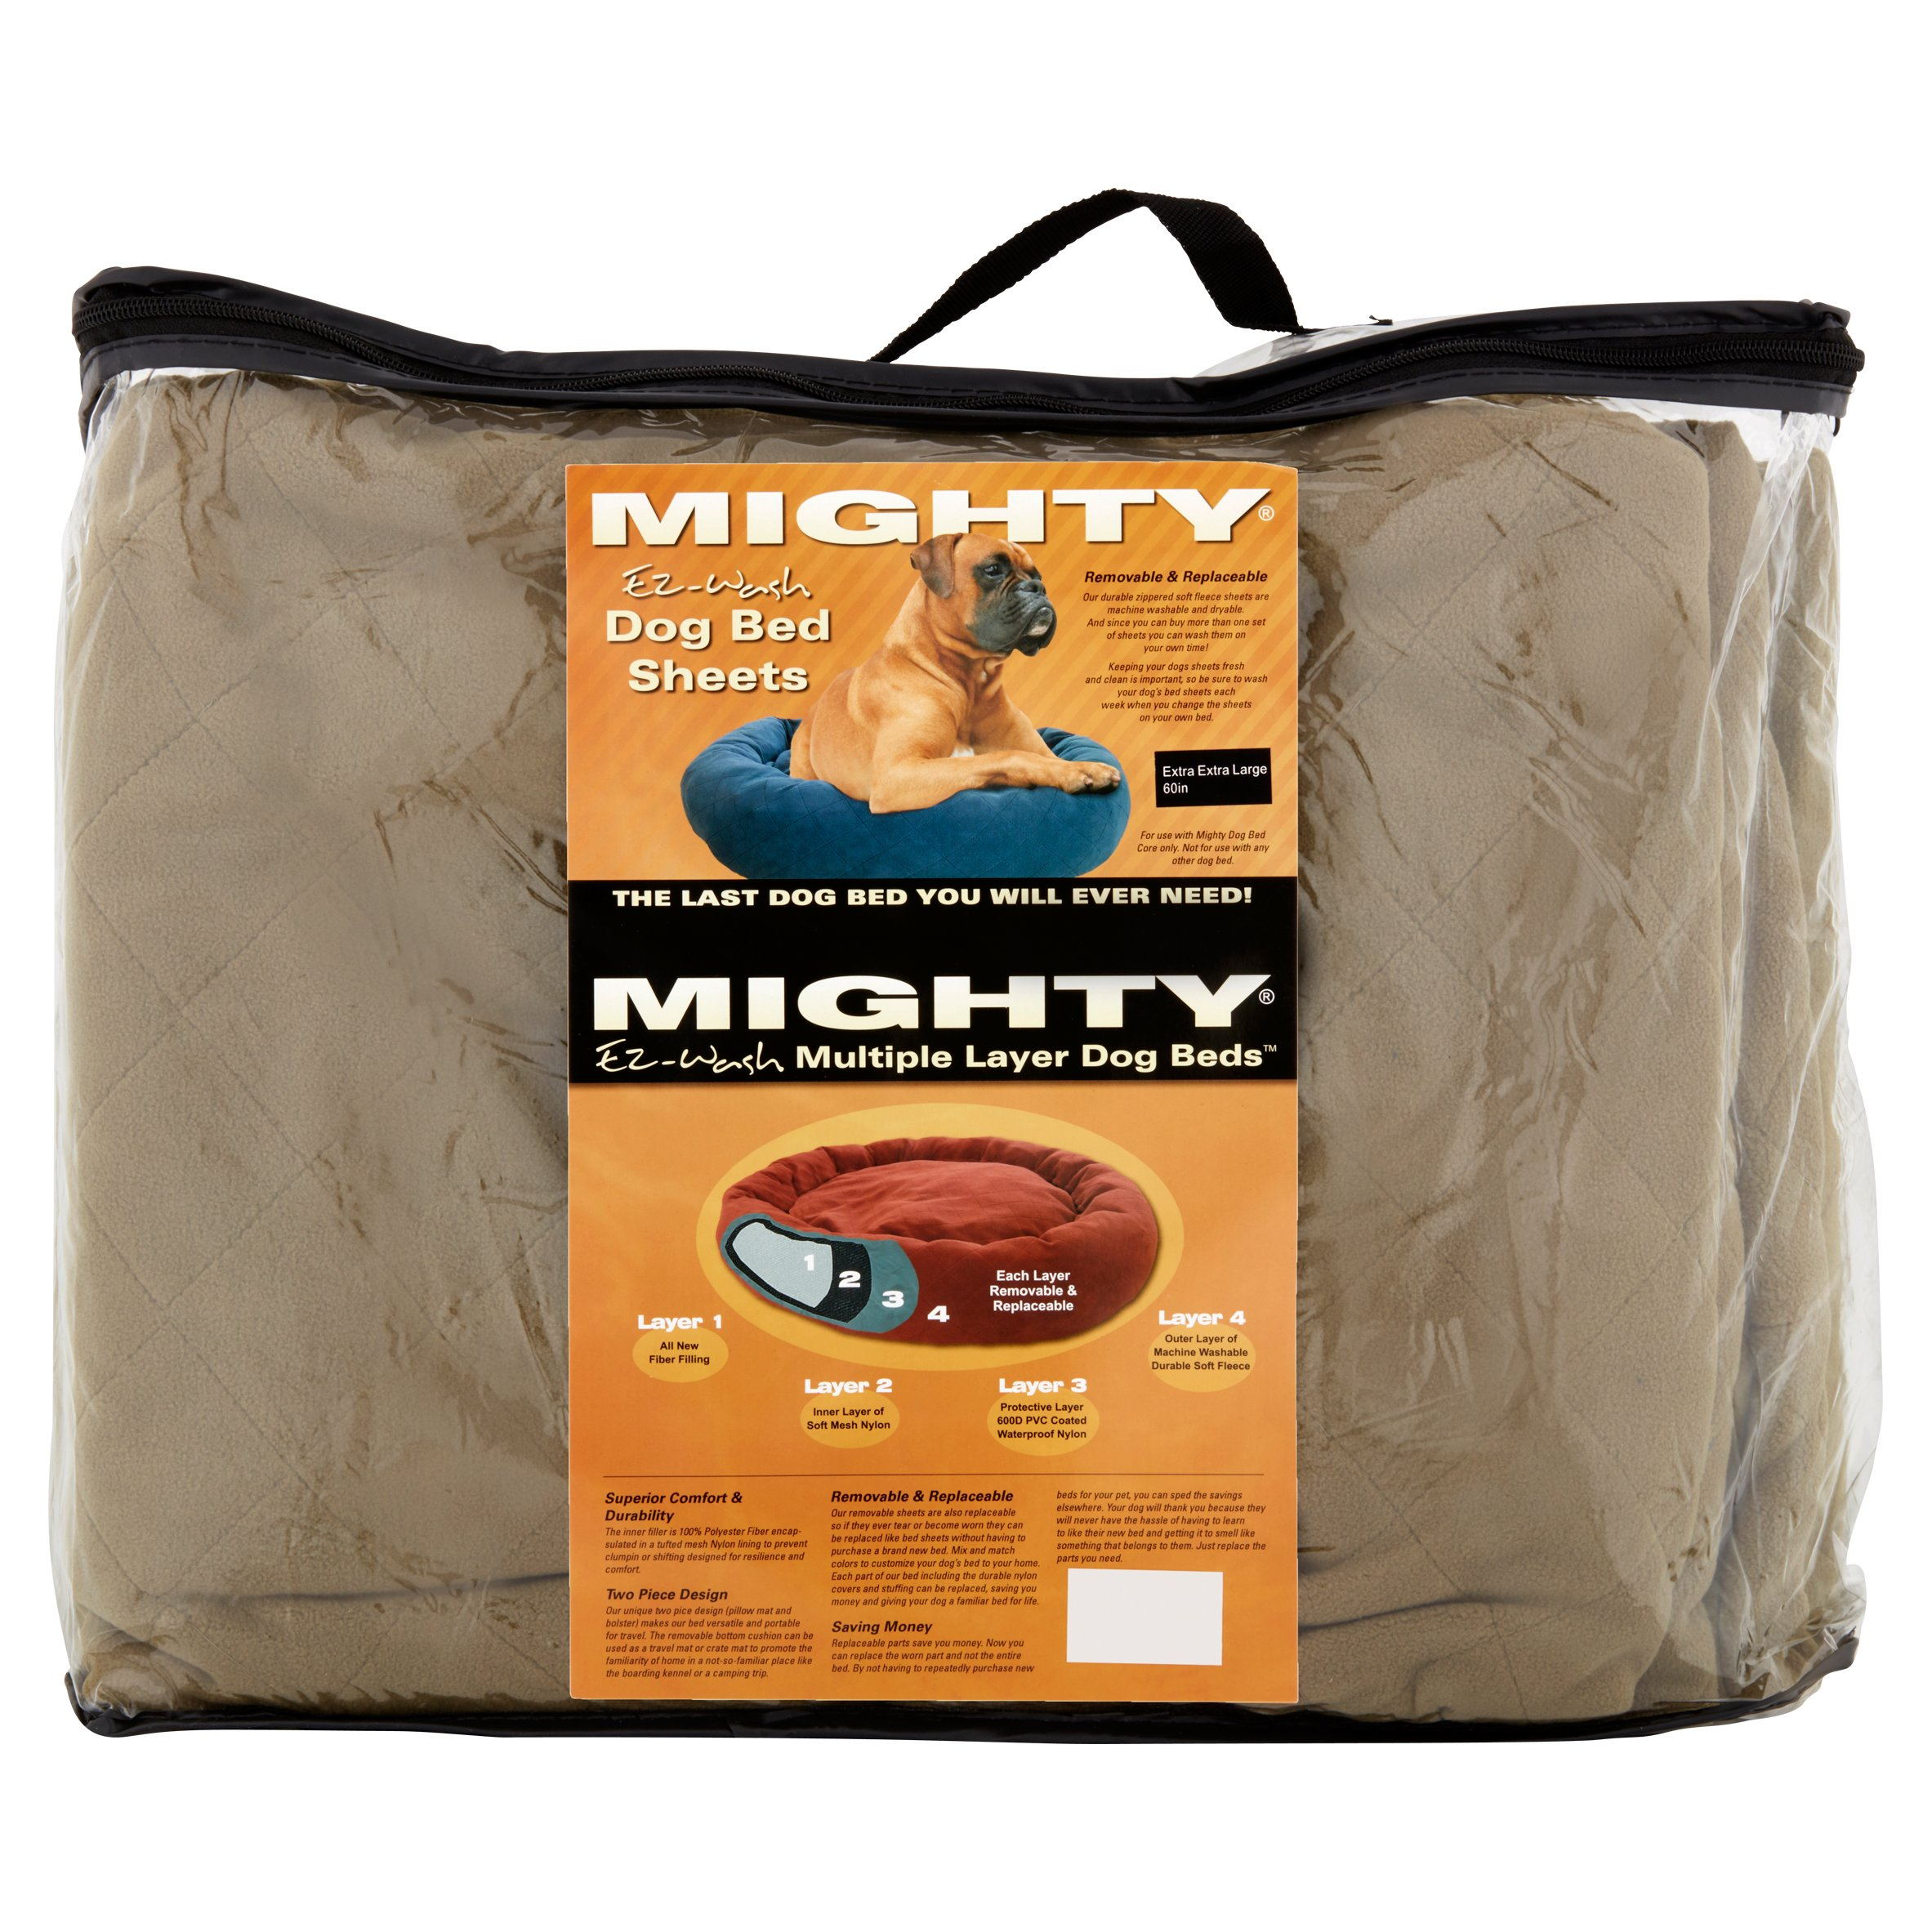 Mighty Ez-Wash Multiple Layer Dog Bed Sheets